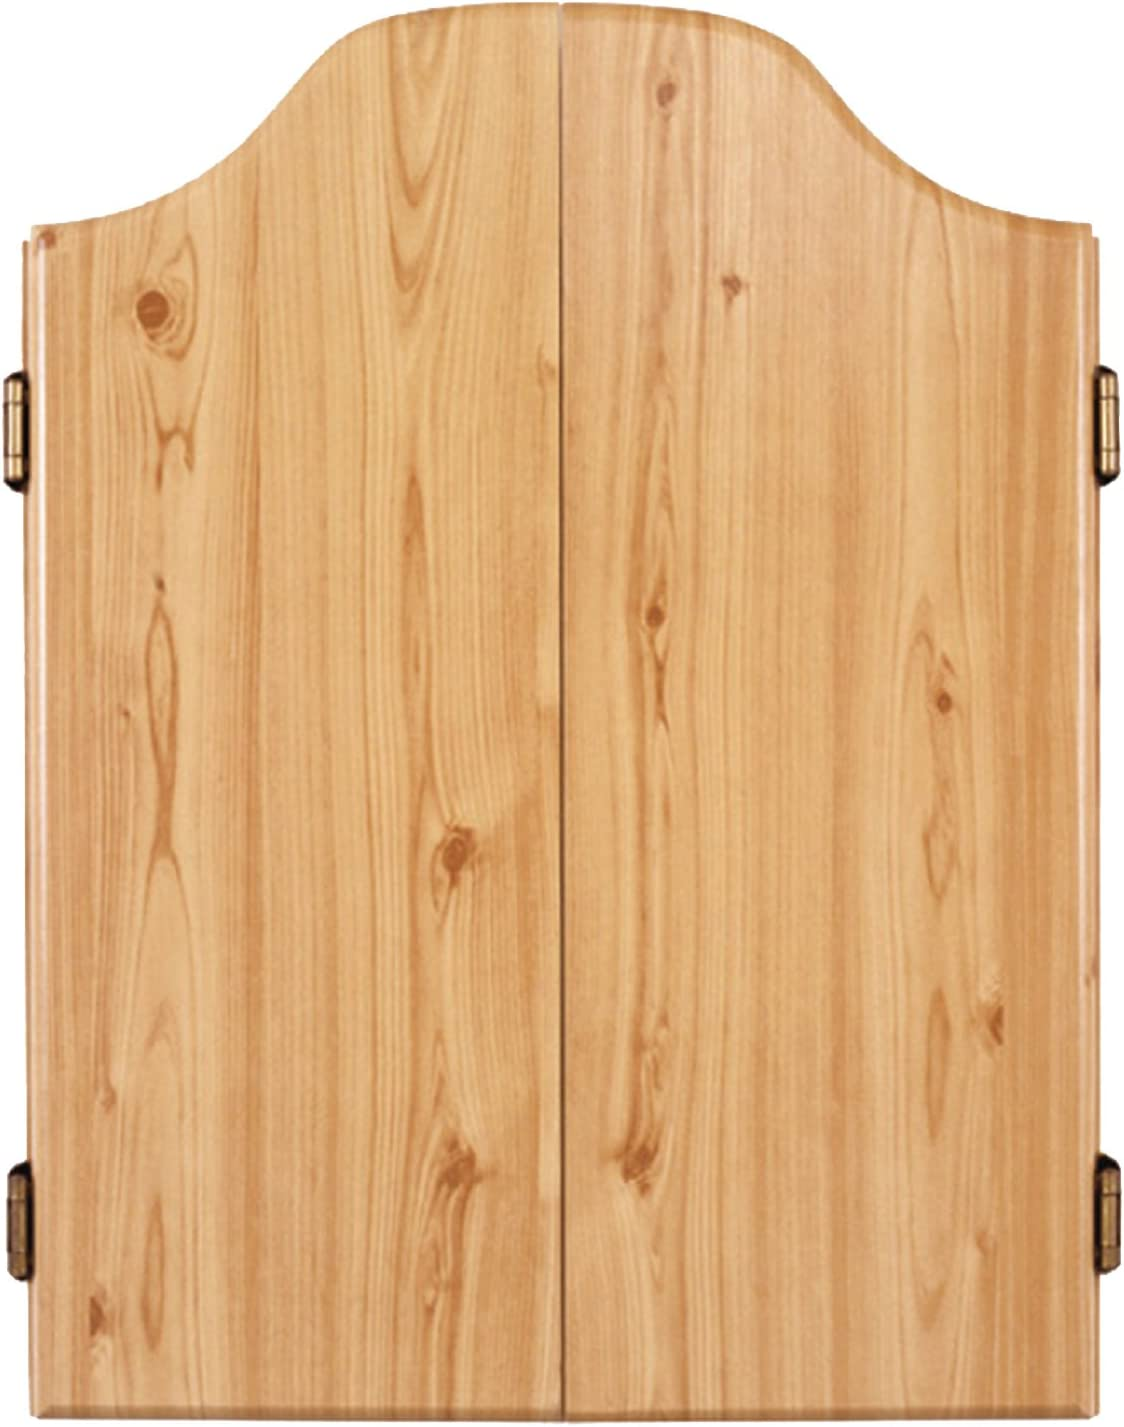 DMI Sports Deluxe Bristle Dartboard Cabinet Set Includes Two Steel Dart Sets with Rustic Rosewood Finish : Dart Board : Sports & Outdoors